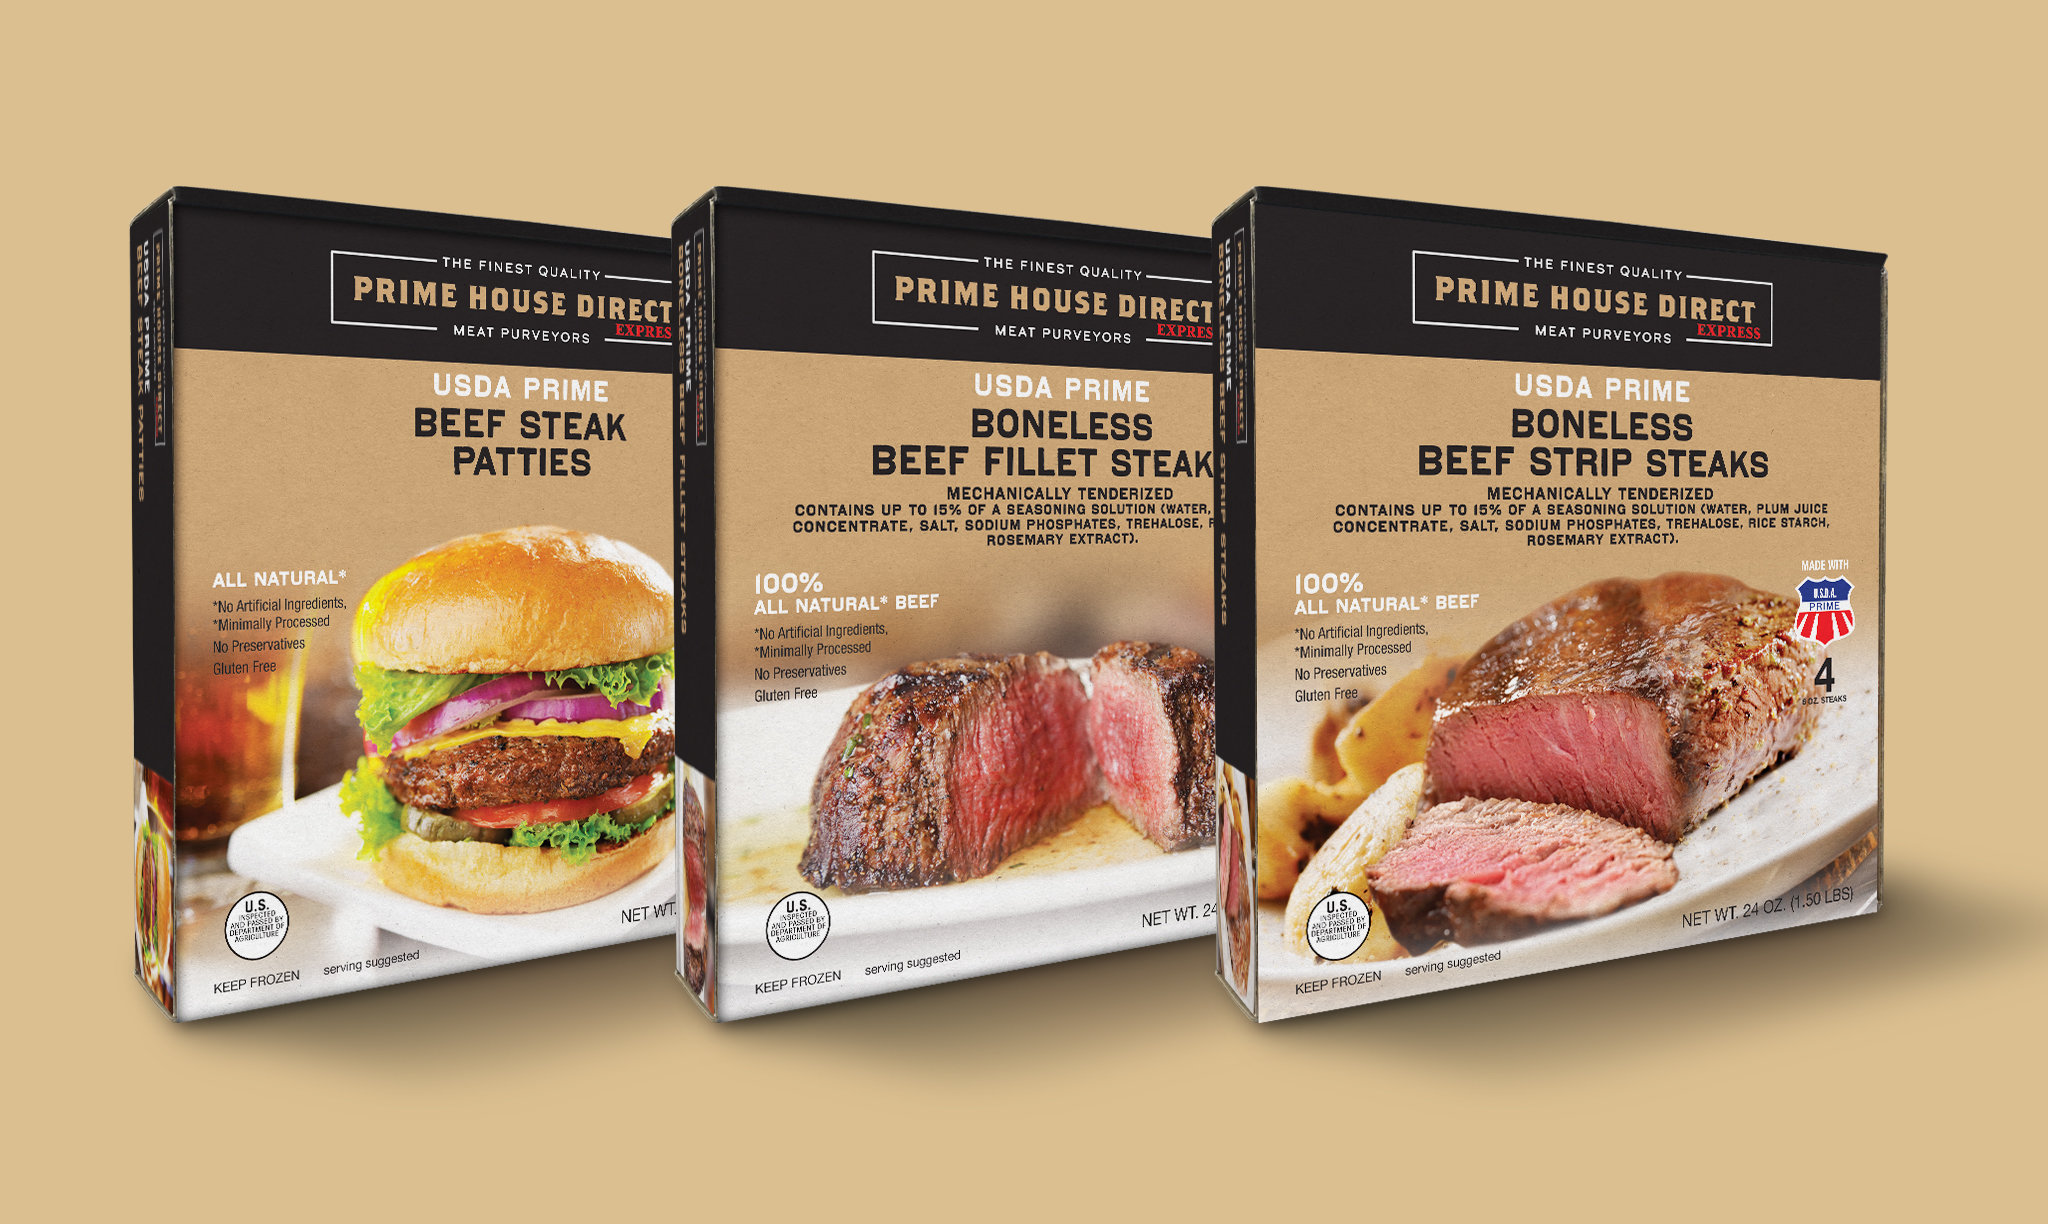 Prime House Direct Express Retail Product Packaging